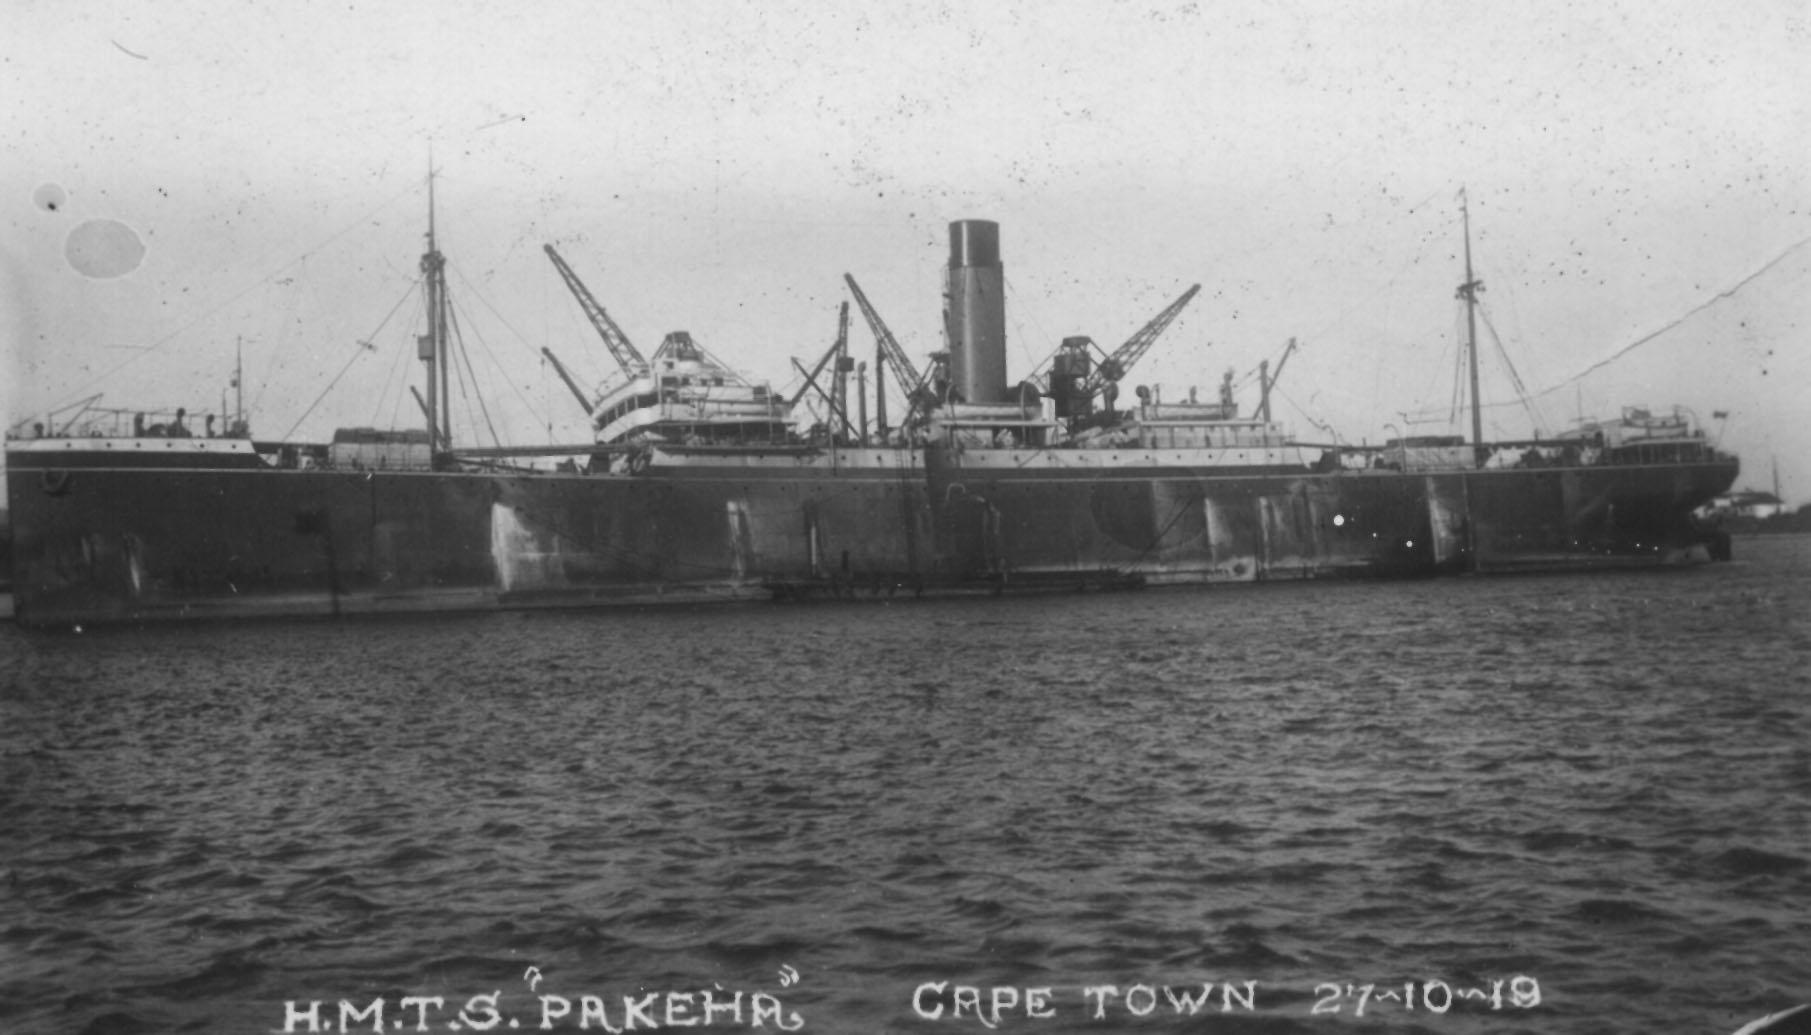 """Passenger Liner """"Pakeha"""", built in 1910 by Harland & Wolff - Belfast.  Owned By Shaw, Savill & Albion Co Ltd. Official Number:  131759 Tonnage:  7899 gross, 5055 net Dimensions:  length 477'5"""", breadth 63'1"""", draught 31'3"""" Port Of Registry:  Southampt"""